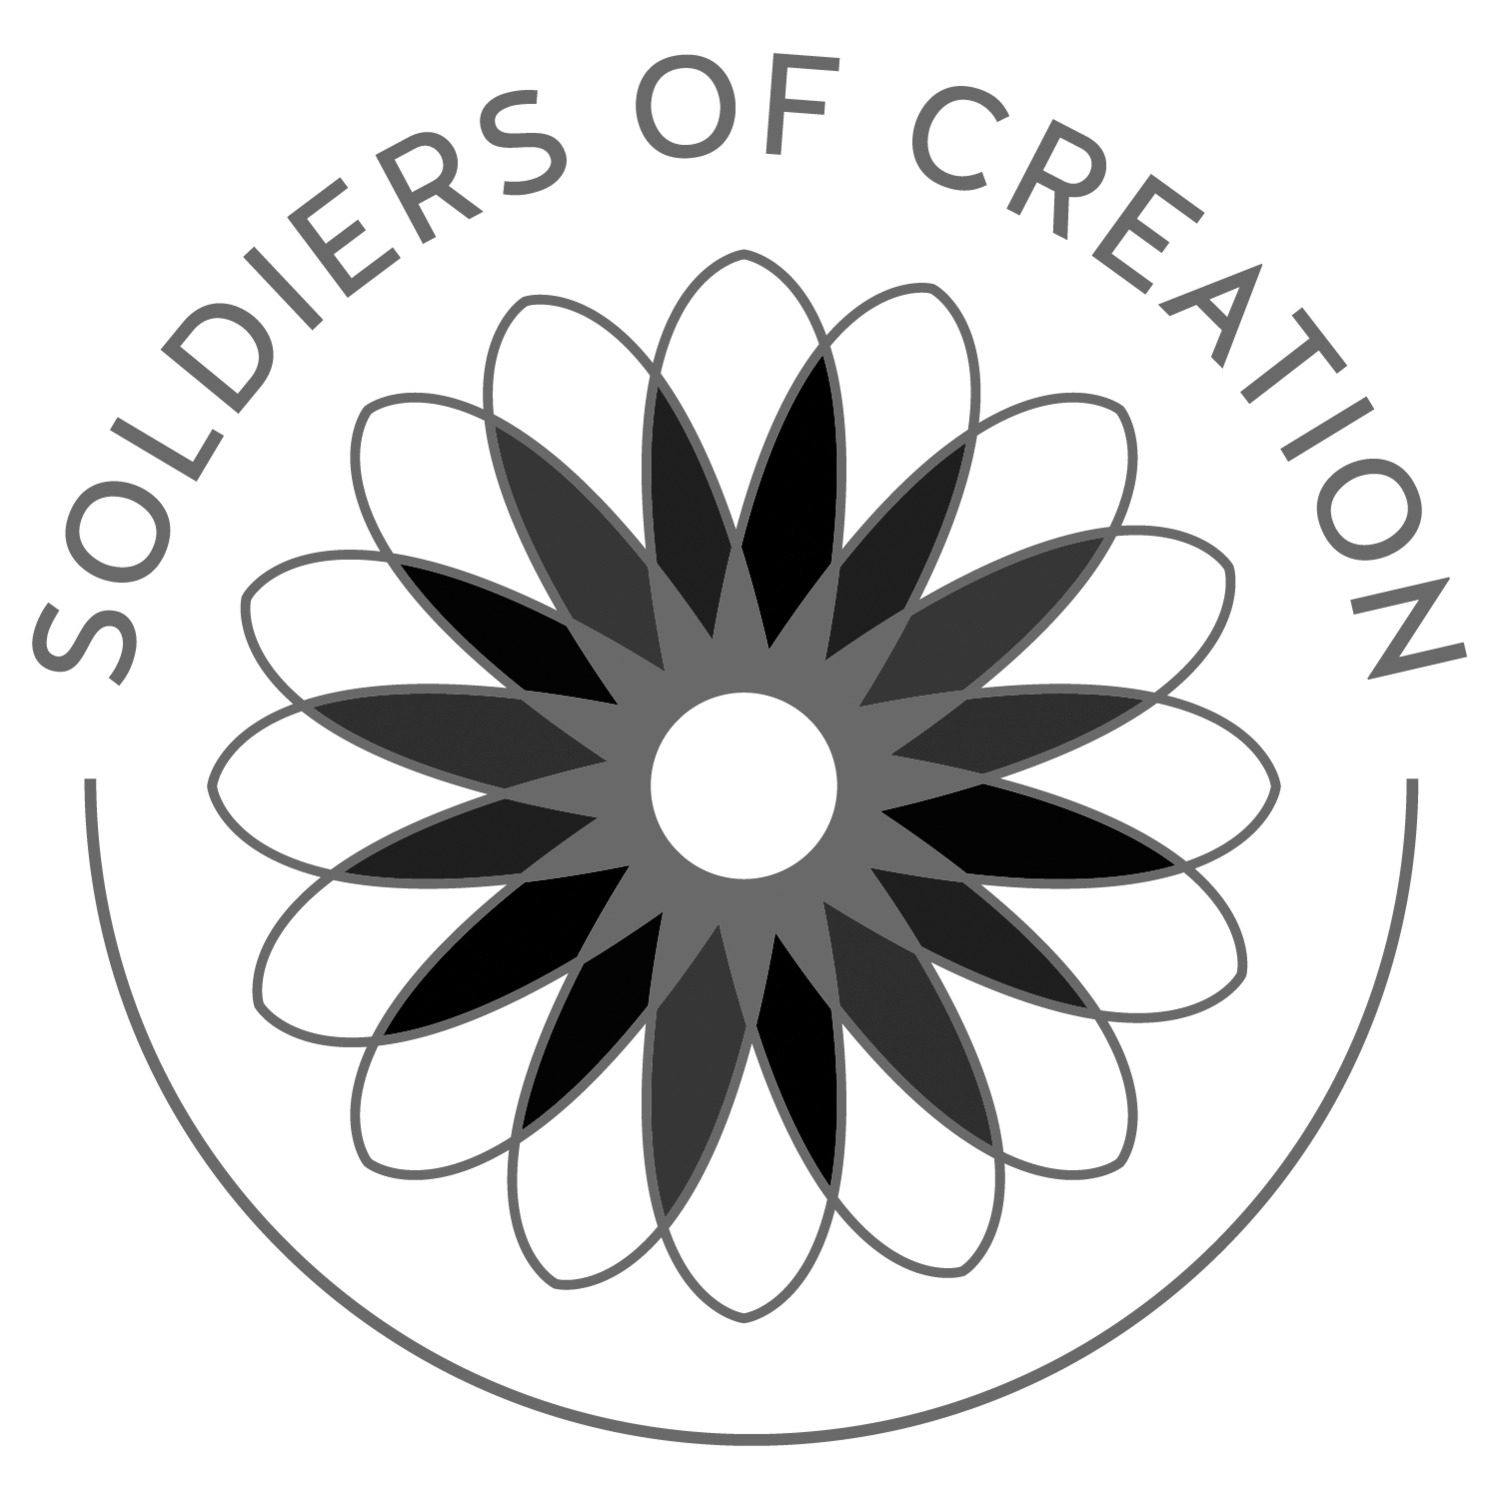 SOLDIERS OF CREATION